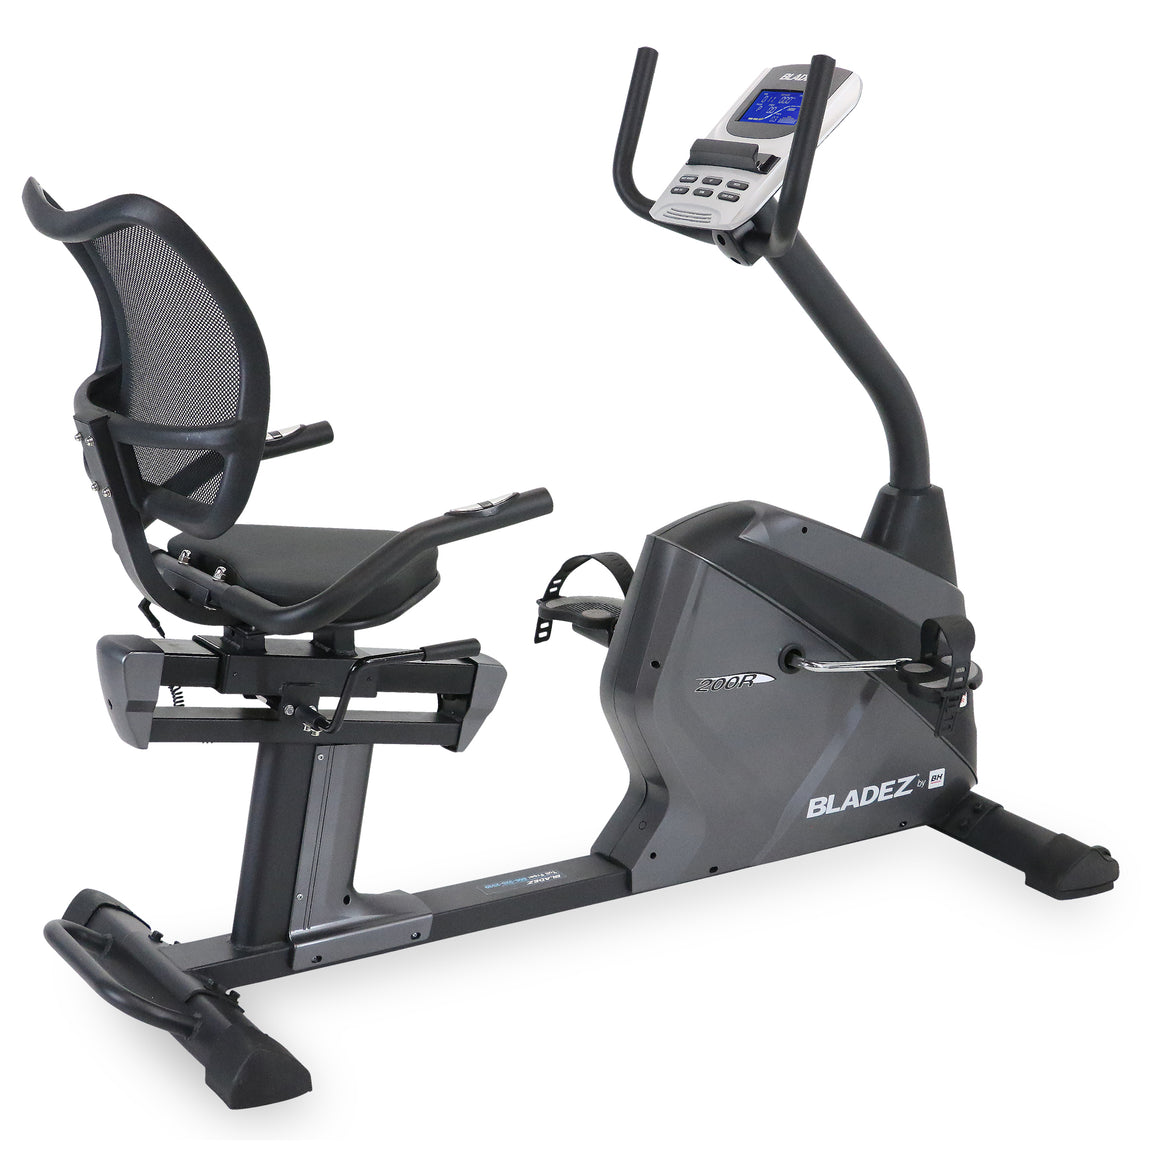 Bladez Fitness 200 R Recumbent Bike - Indoor Cyclery